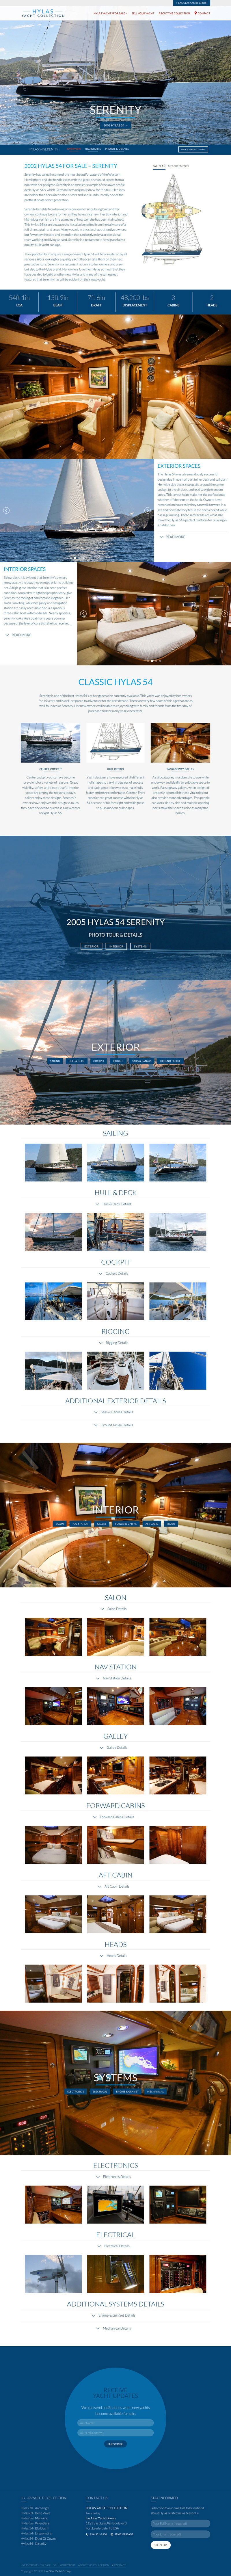 Sample Collection Yachts Listing